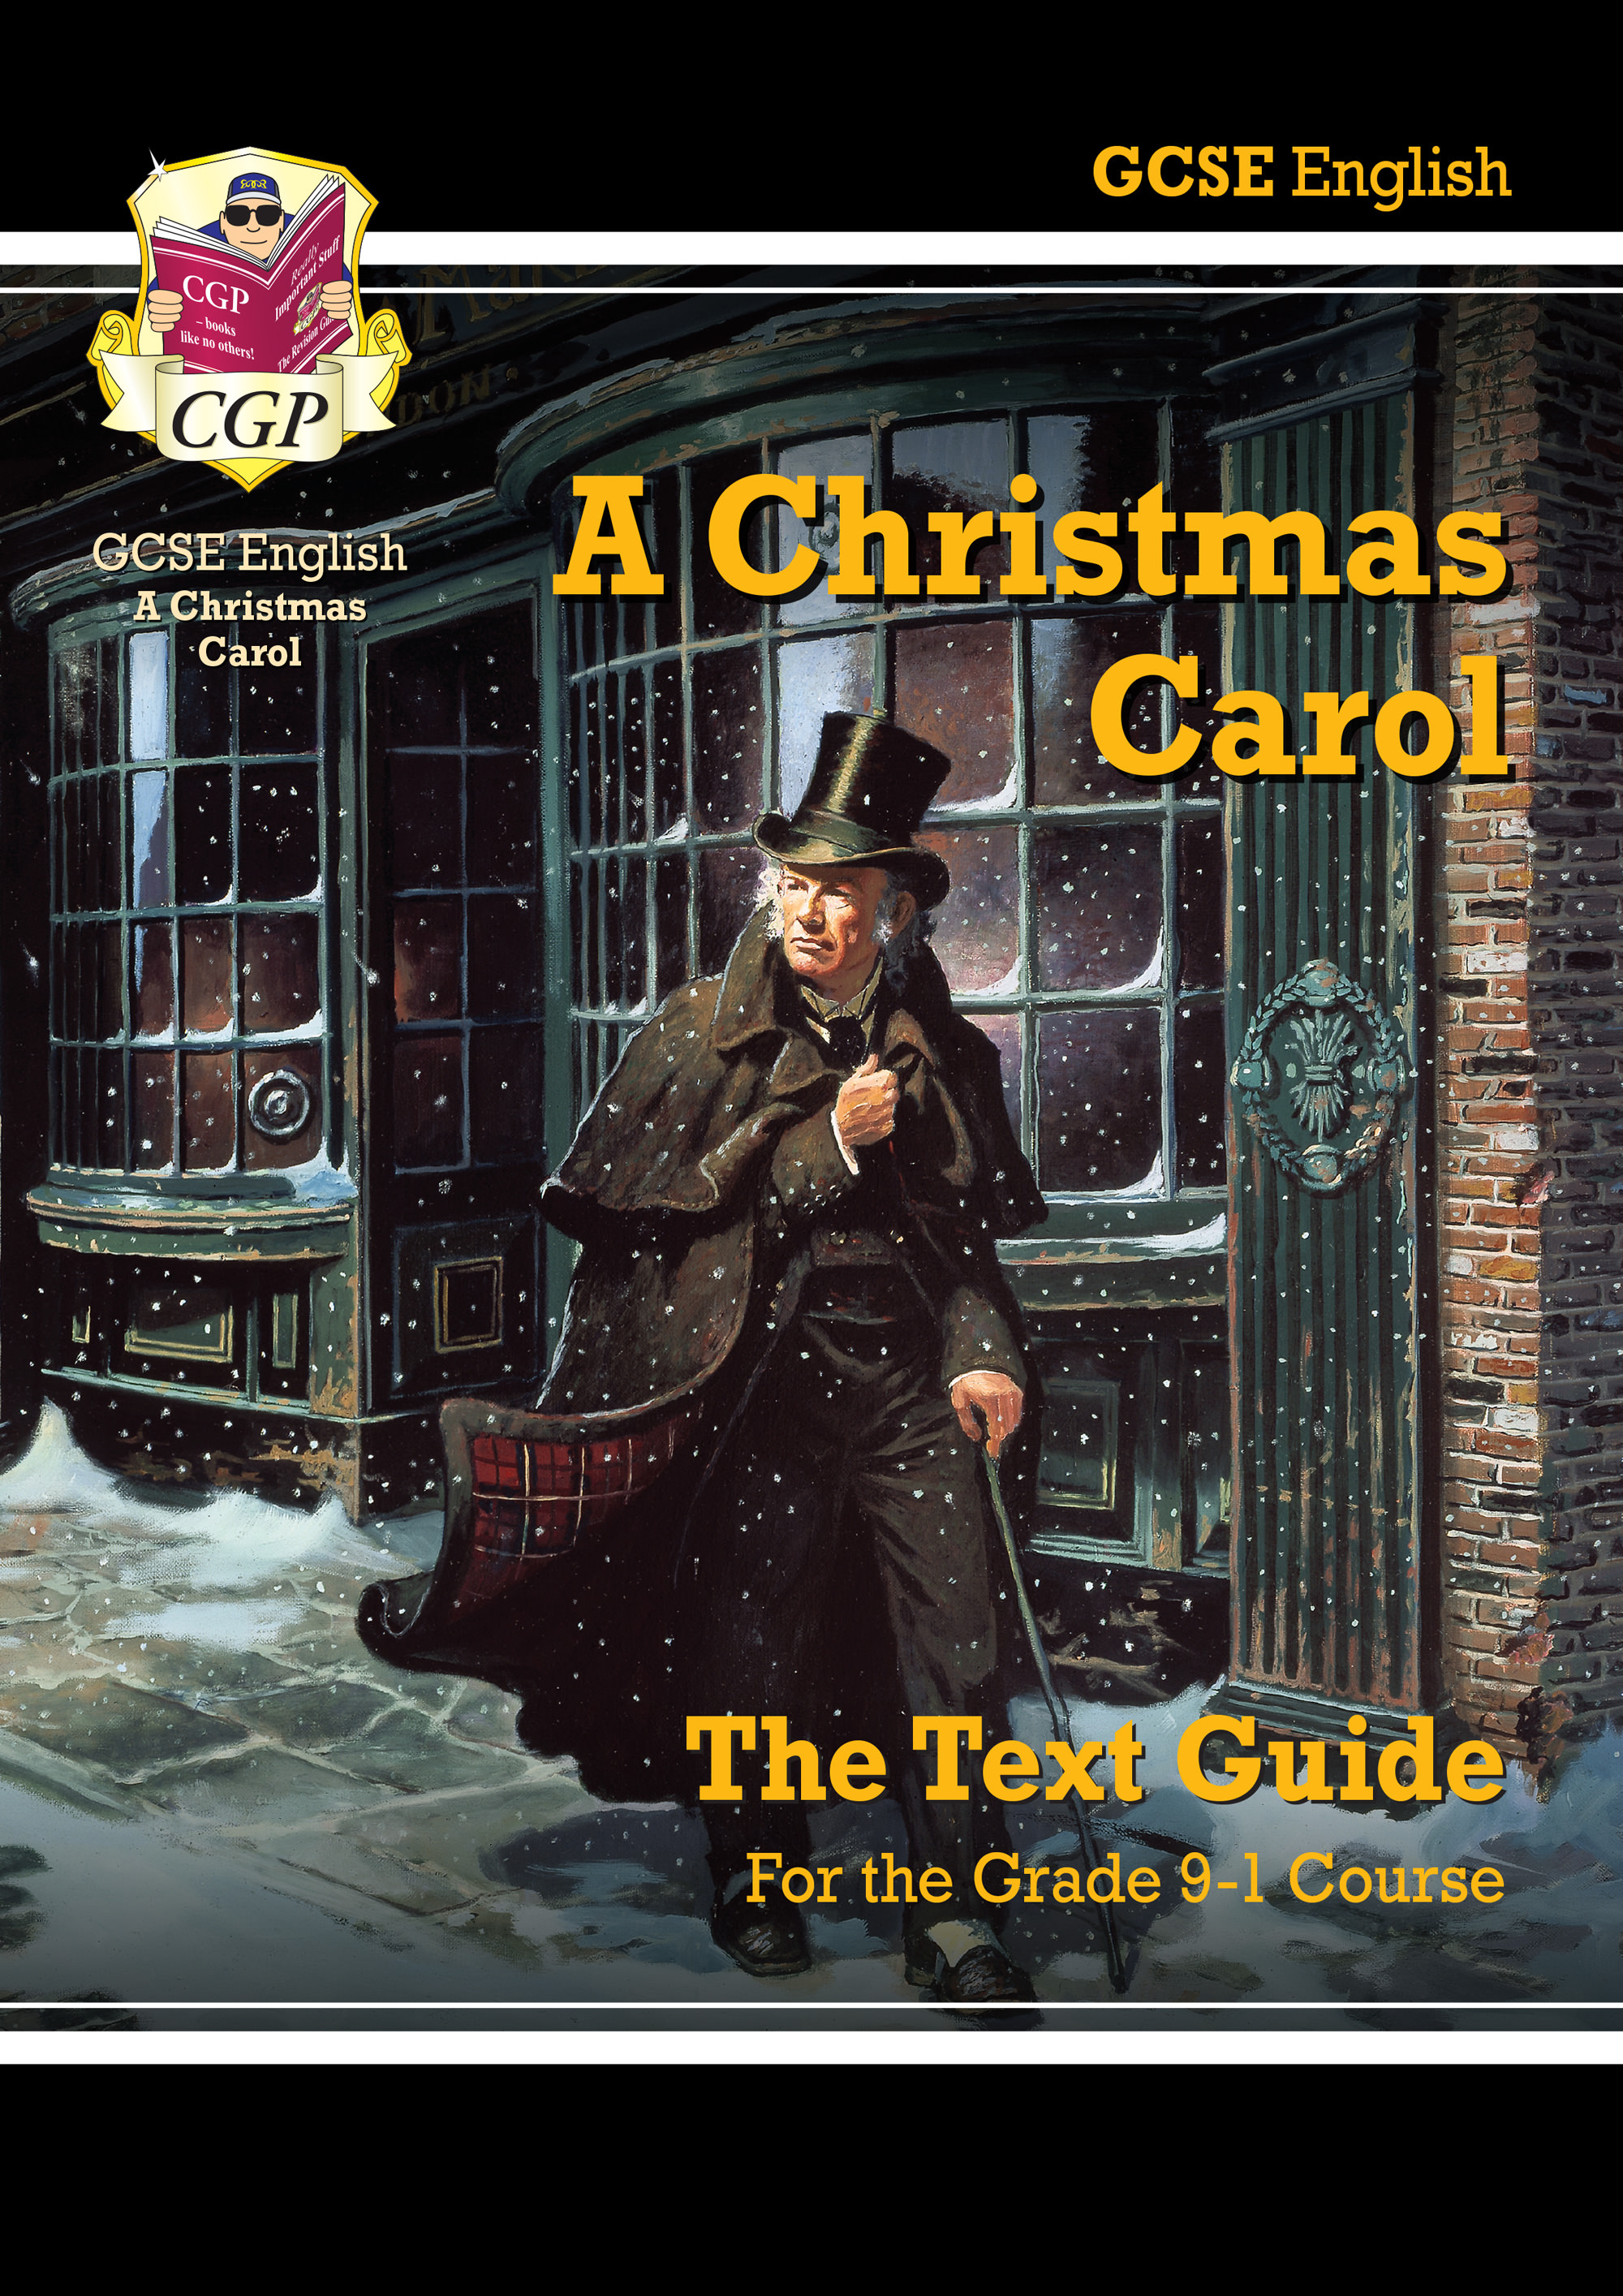 ETCC41 - Grade 9-1 GCSE English Text Guide - A Christmas Carol